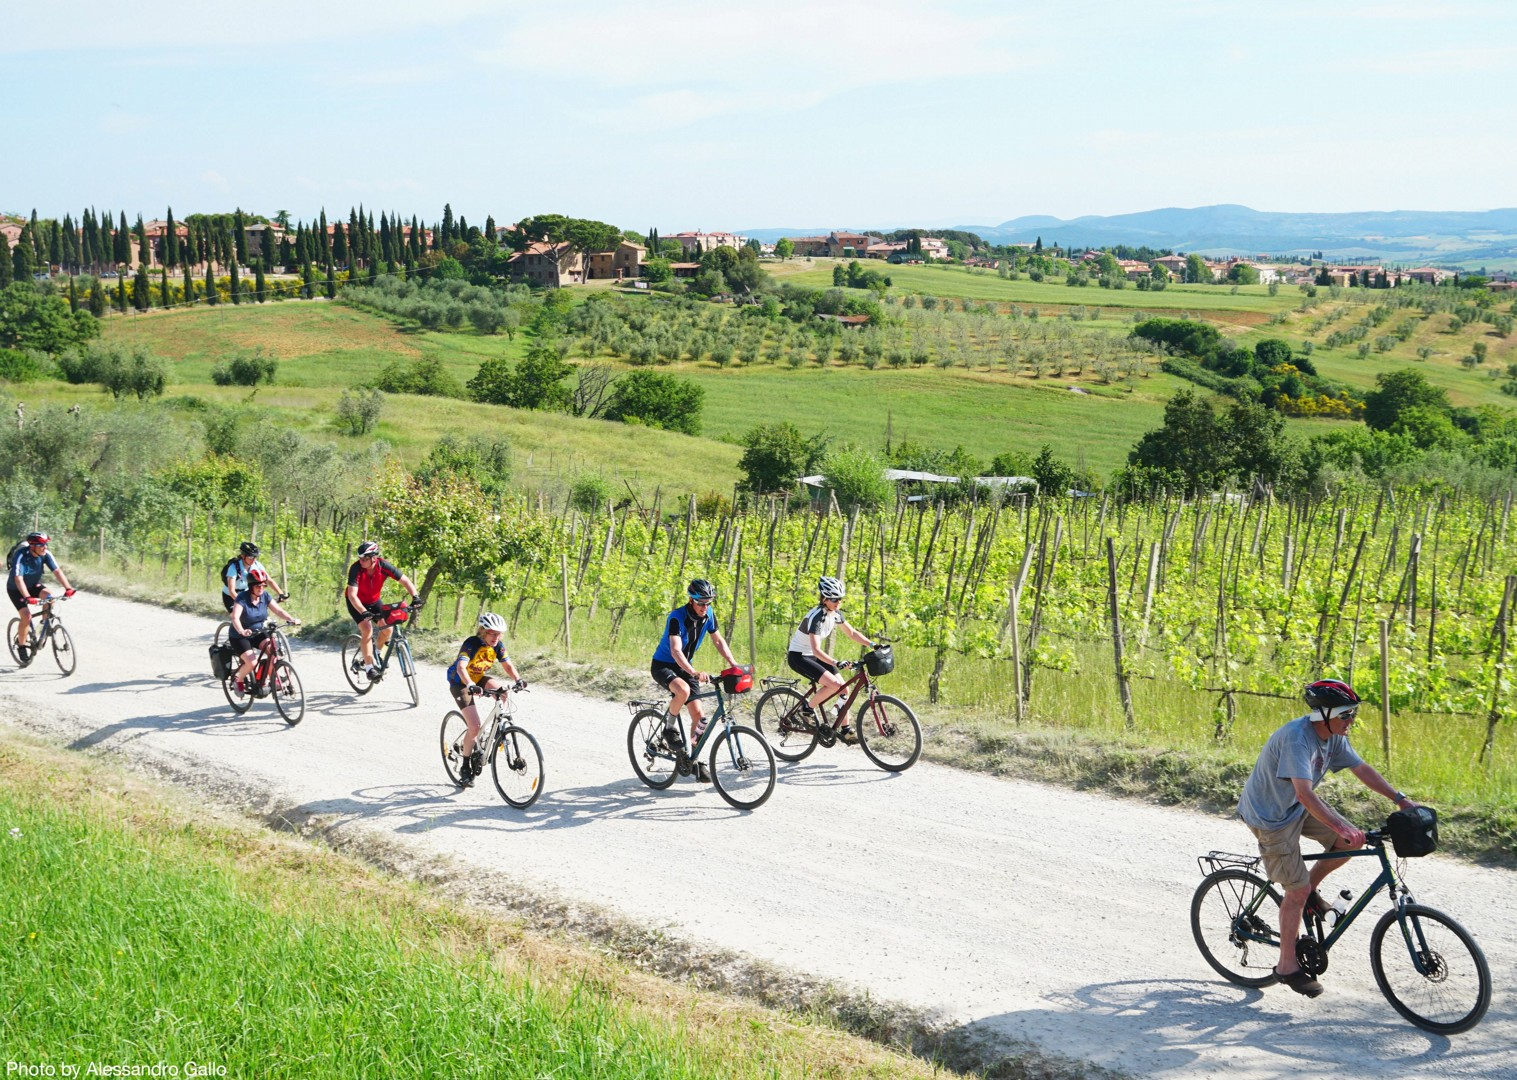 Italy-Via-Francigena-Tuscany-to-Rome-Guided-Leisure-Cycling-Holiday-group-cycling - Italy - Via Francigena (Tuscany to Rome) - Guided Leisure Cycling Holiday - Leisure Cycling